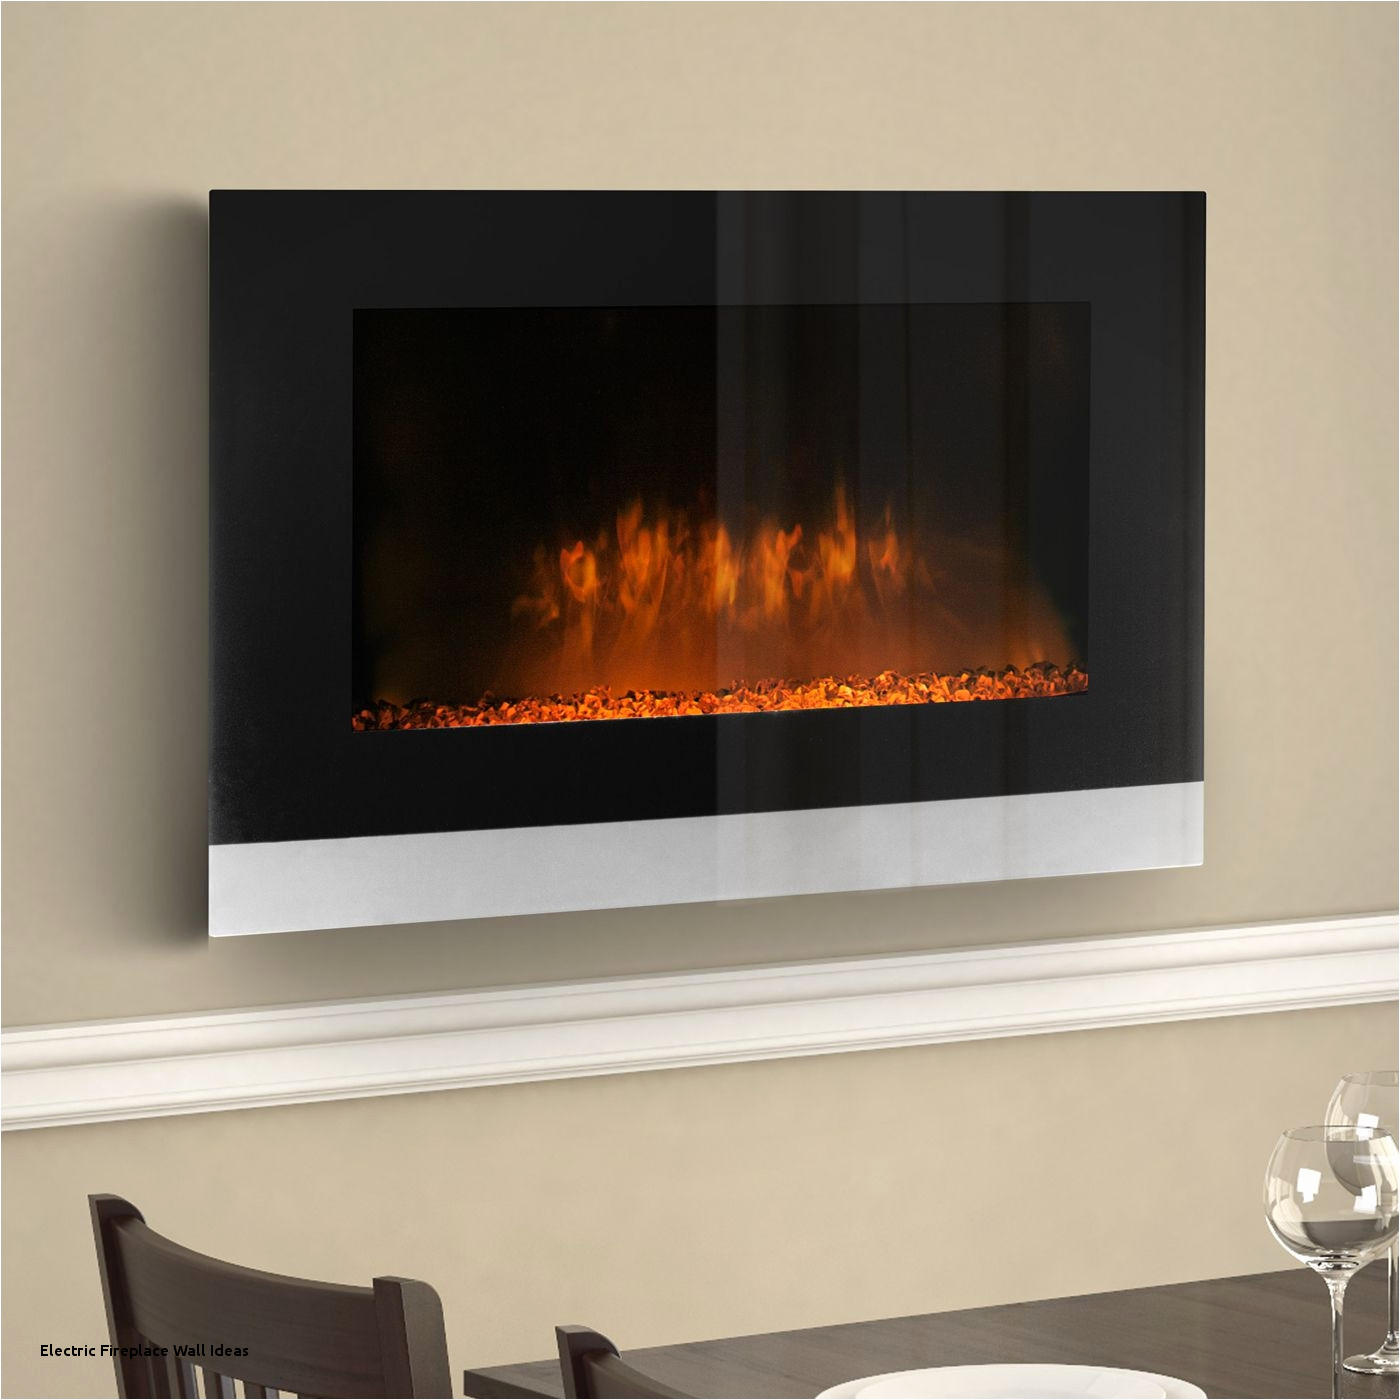 menards electric fireplaces sale wall mount electric fireplace inspirational electric fireplace wall ideas of electric fireplace wall ideas